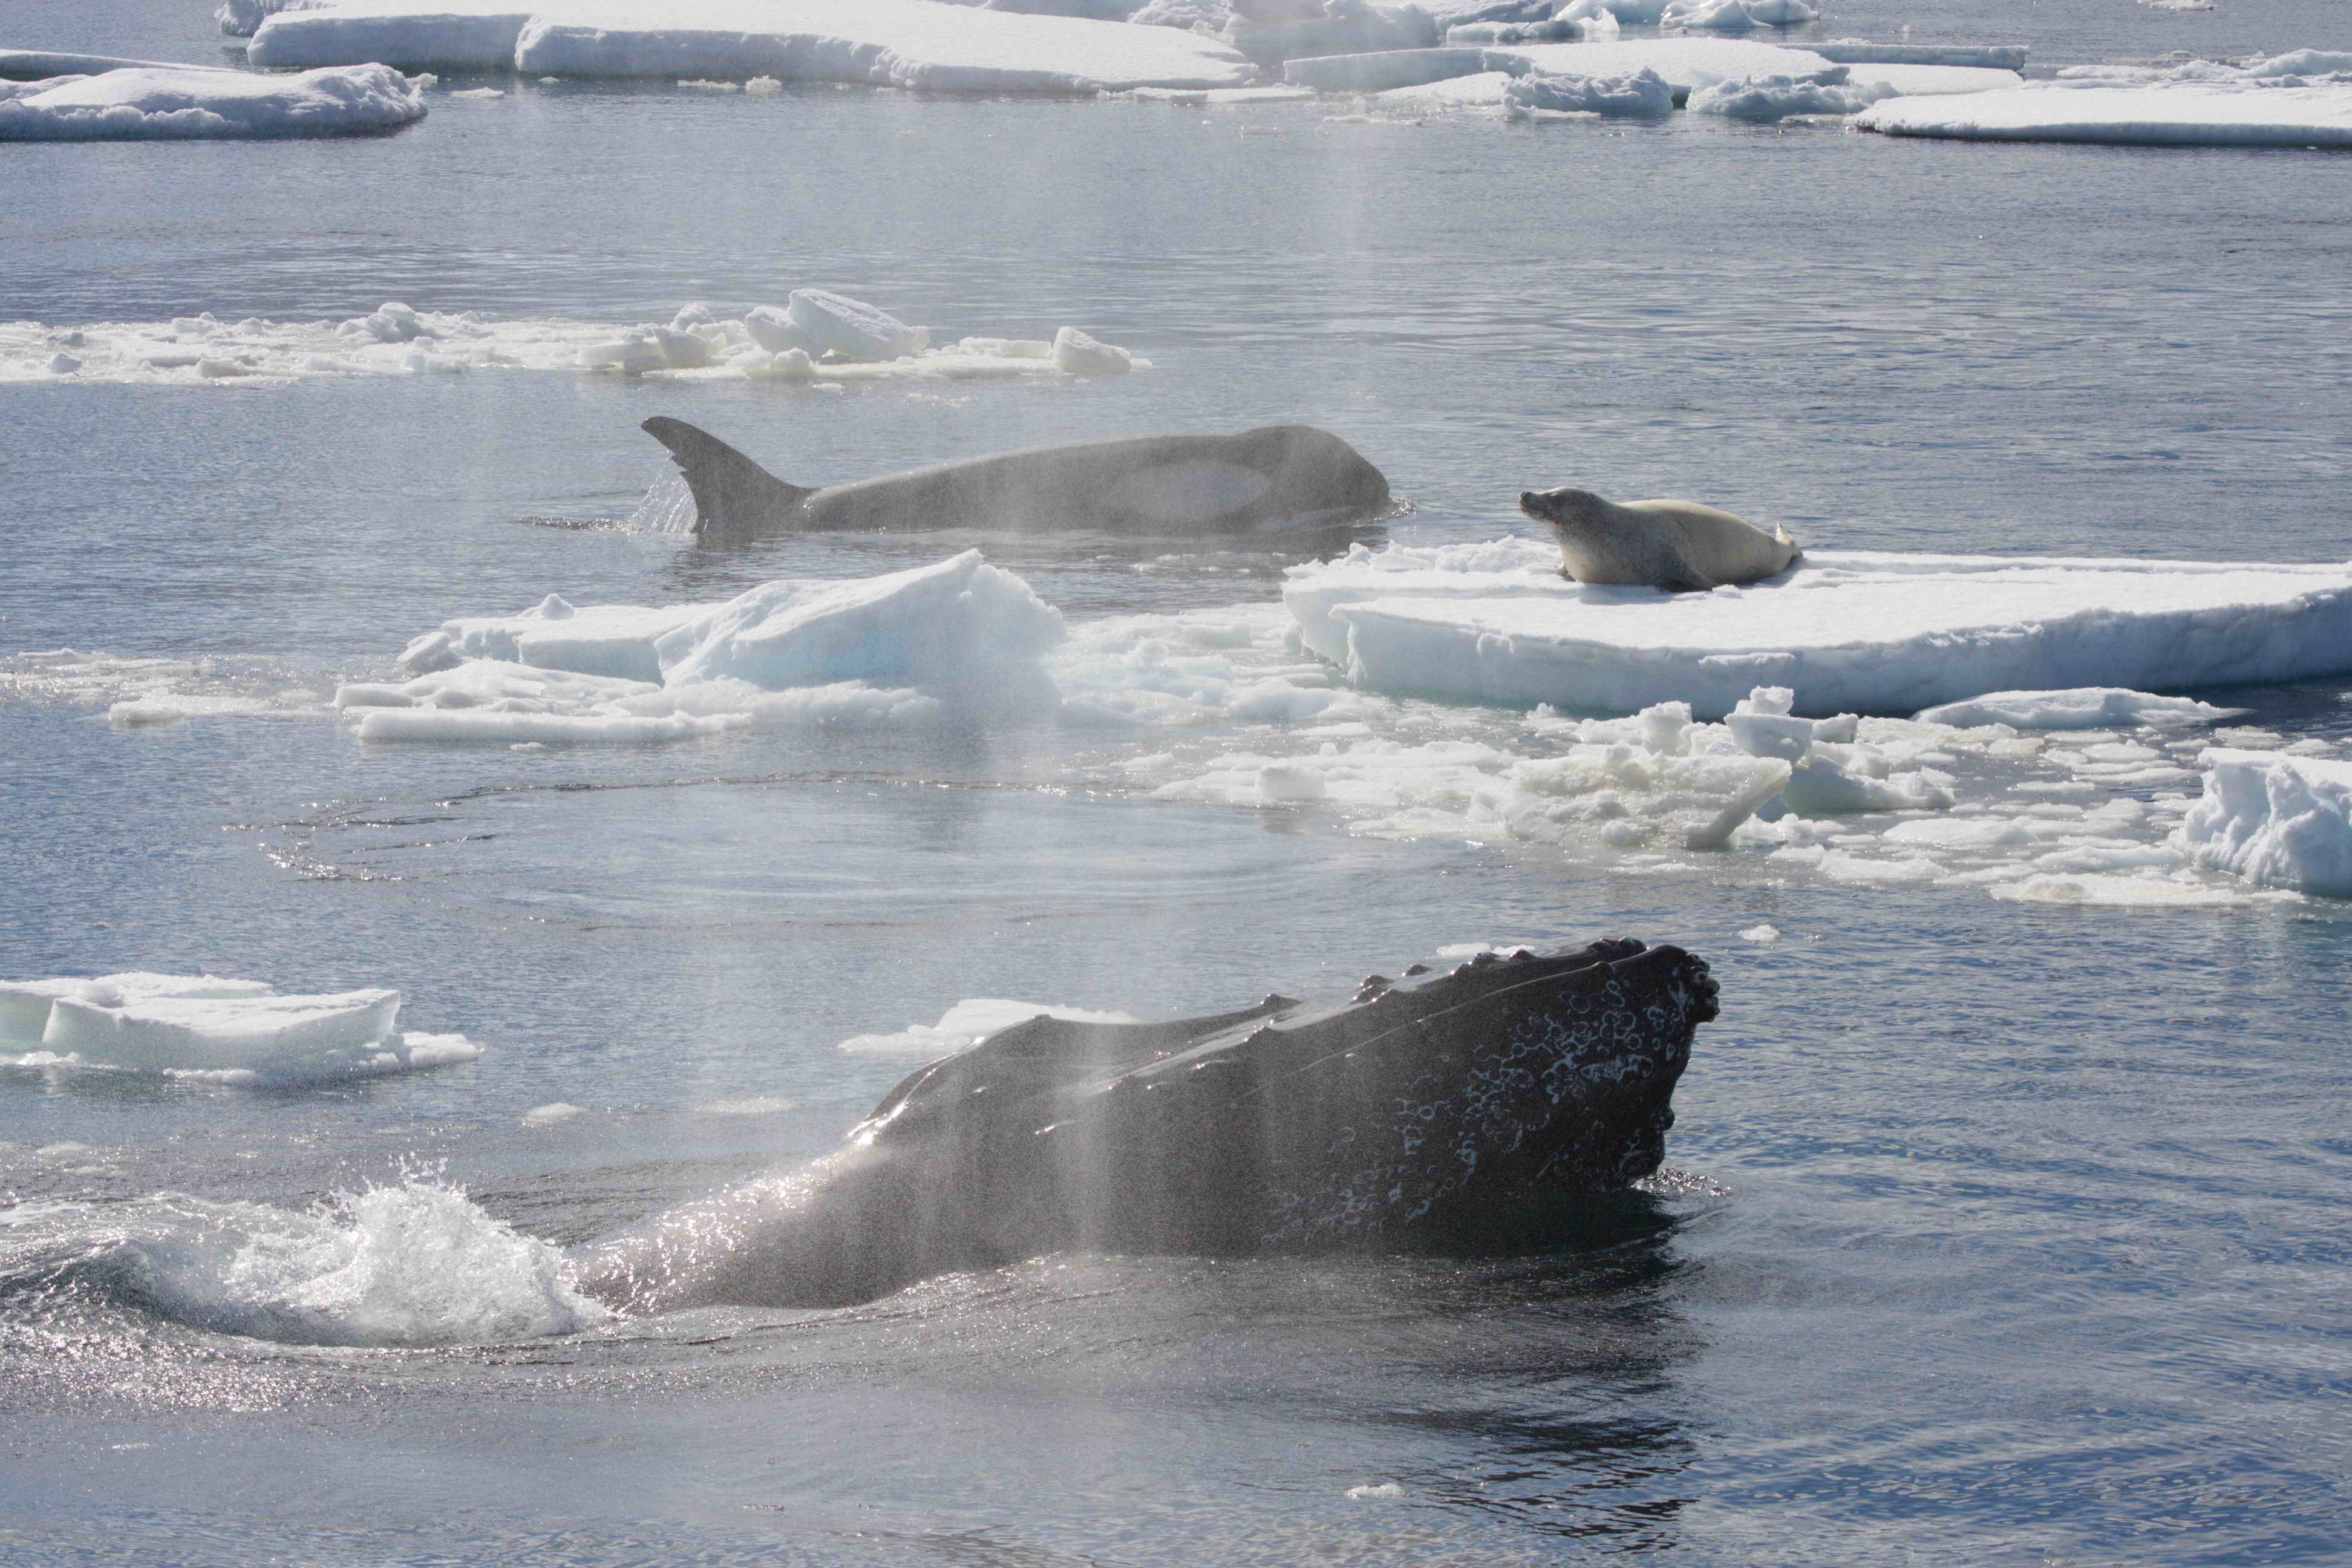 A crabeater seal on an ice floe in Antarctica being attacked by a group of killer whales. A pair of humpback whales have charged in (one individual shown) and they are attempting to drive off the killer whales. Photo by Robert L. Pitman.